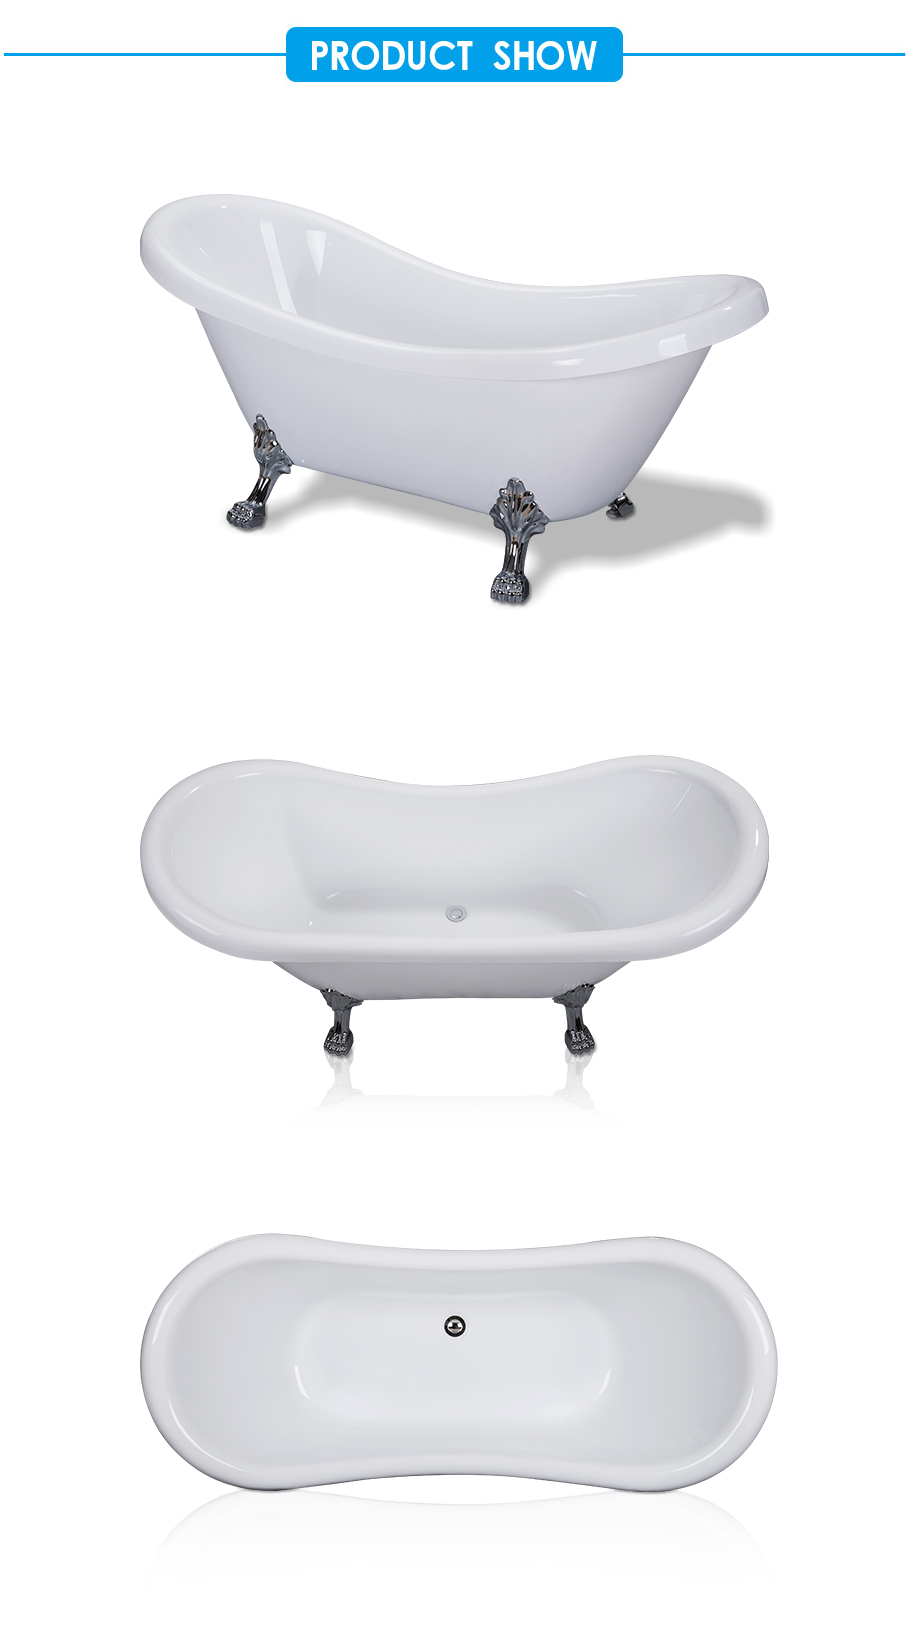 Aqua Acrylic Double Slipper Freestanding Bathtub